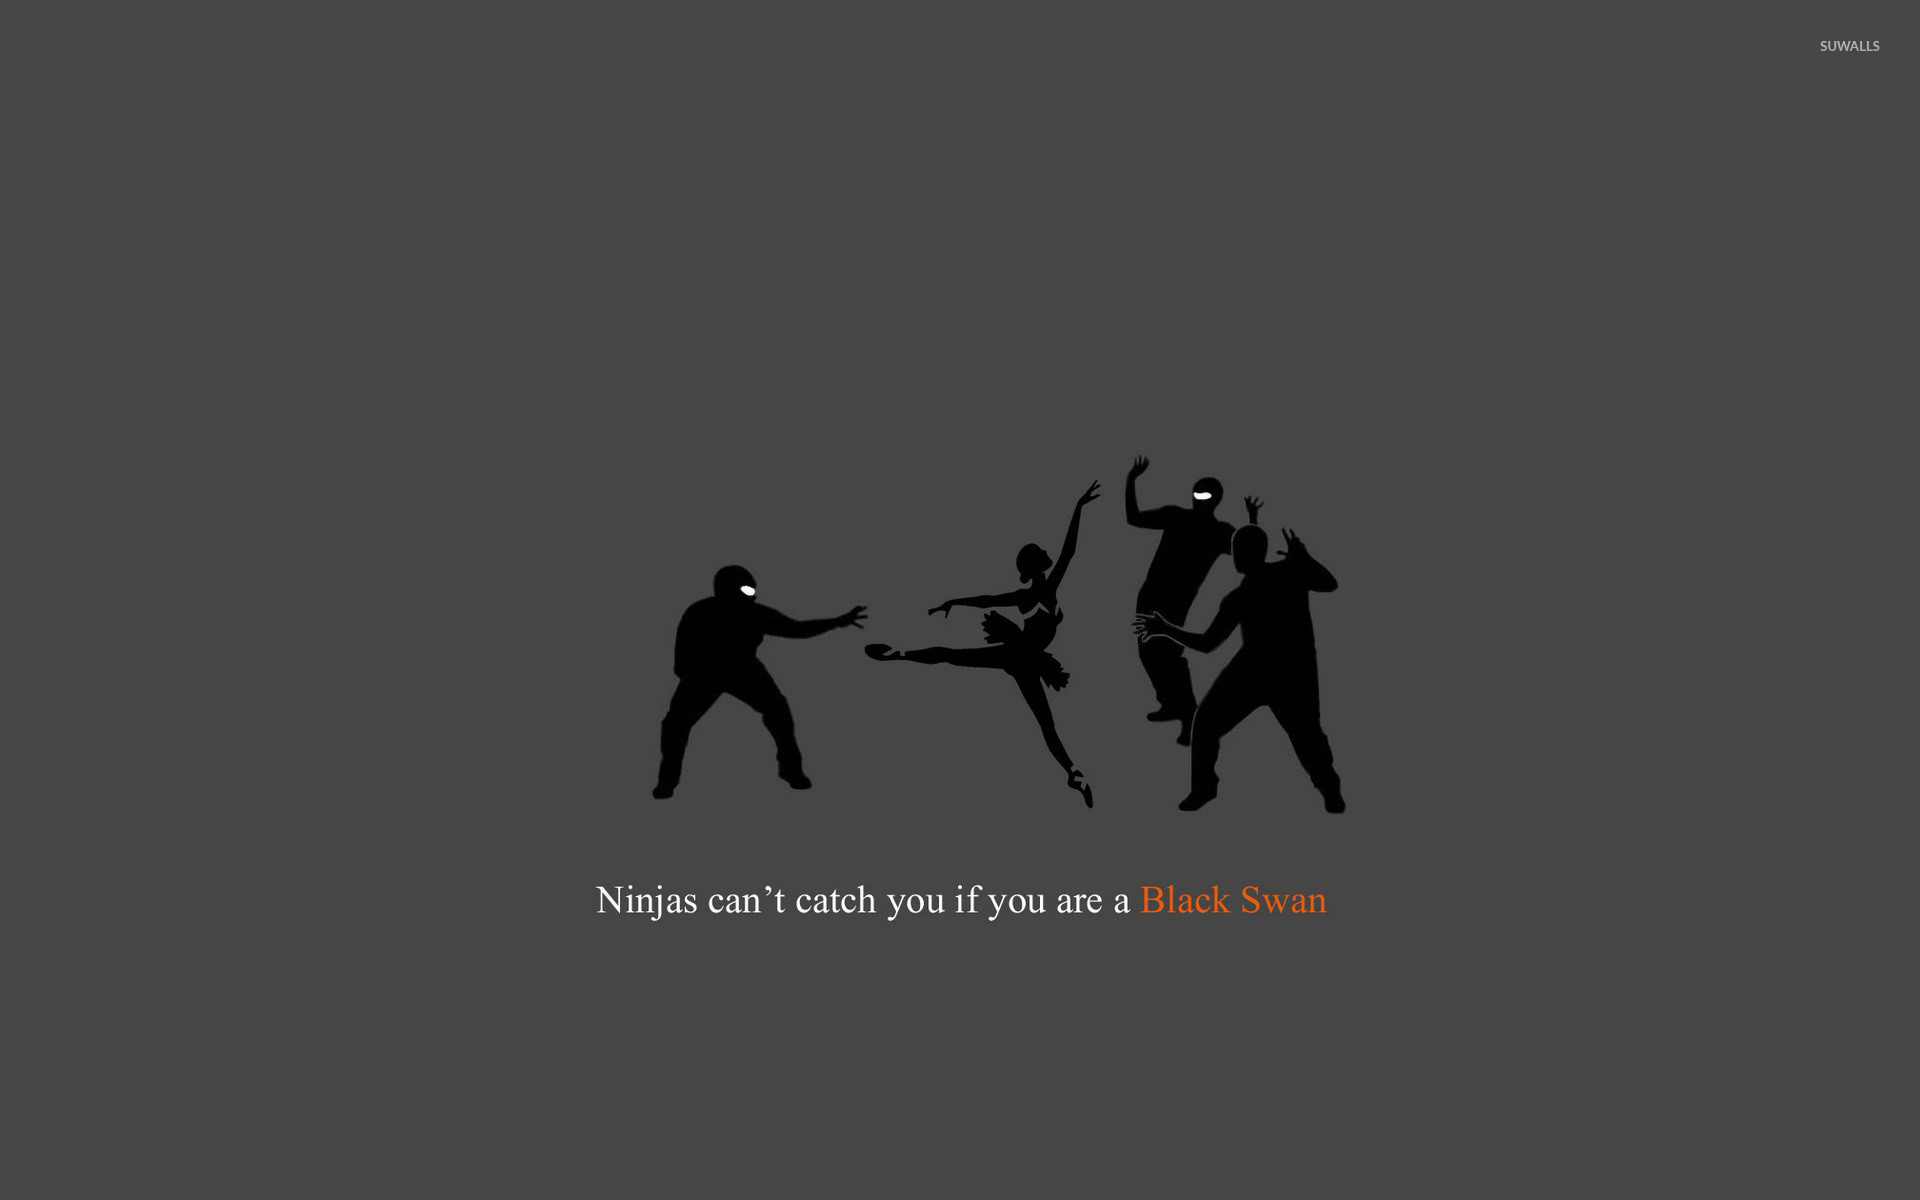 1920x1200 Ninjas can't catch you if you're a Black Swan wallpaper